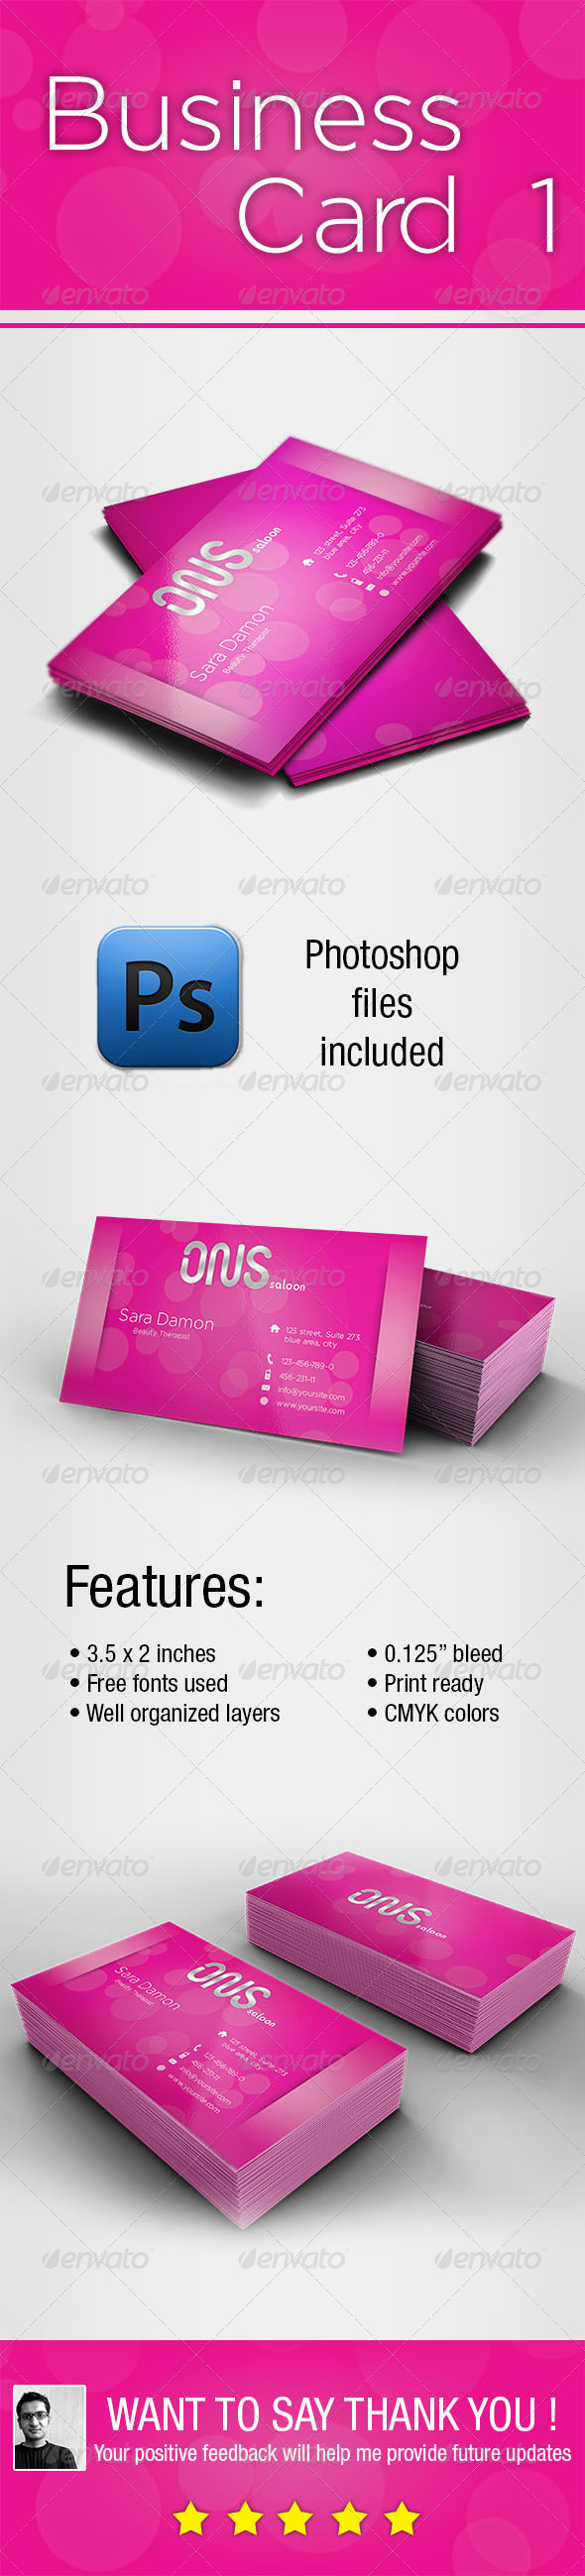 GraphicRiver Business Card 1 5559911